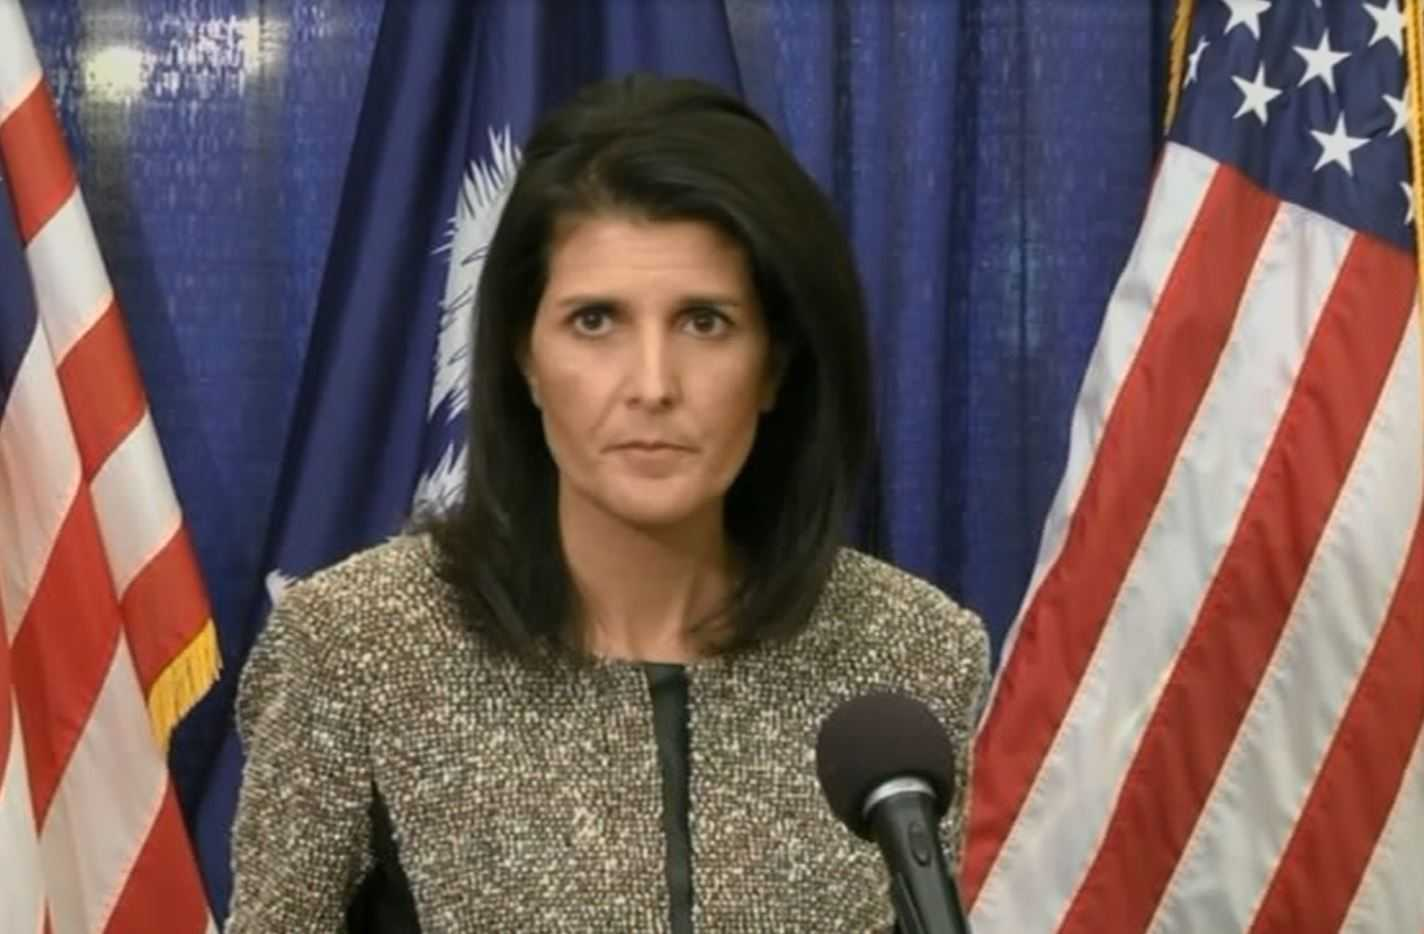 Gov. Nikki Haley tapped to be ambassador to UN